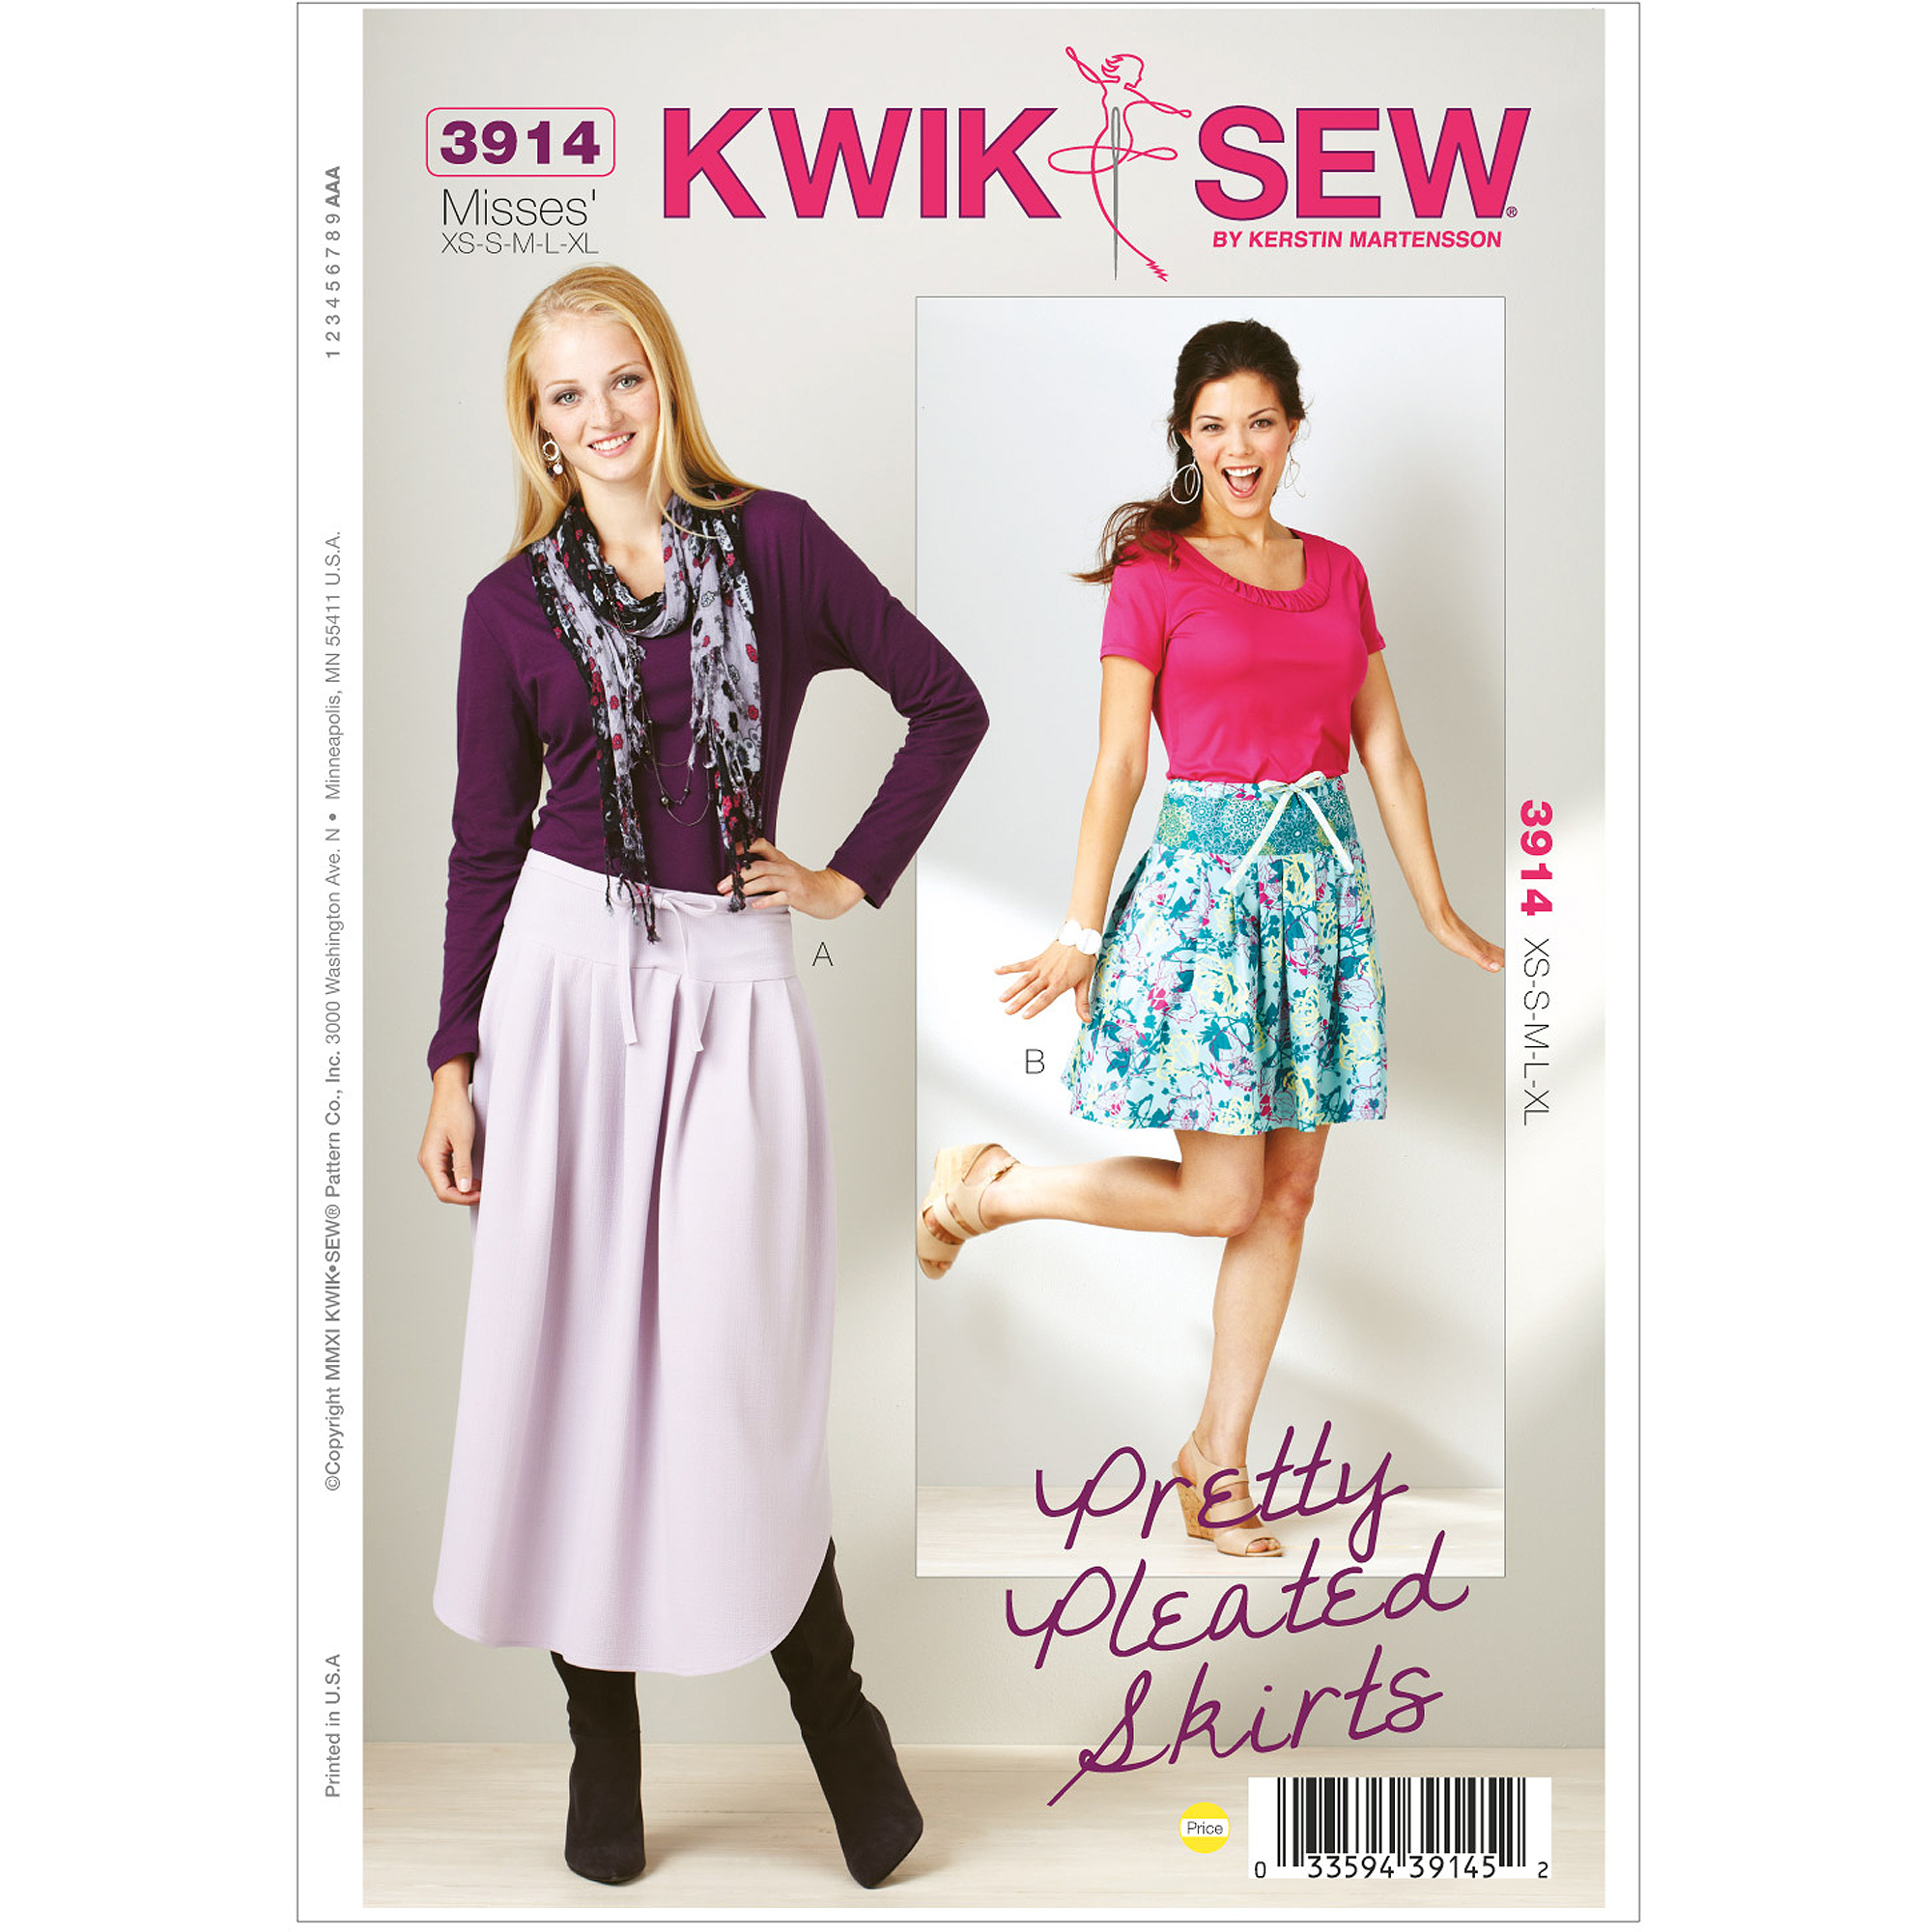 Kwik Sew Pattern Pretty Pleated Skirt, (XS, S, M, L, XL)